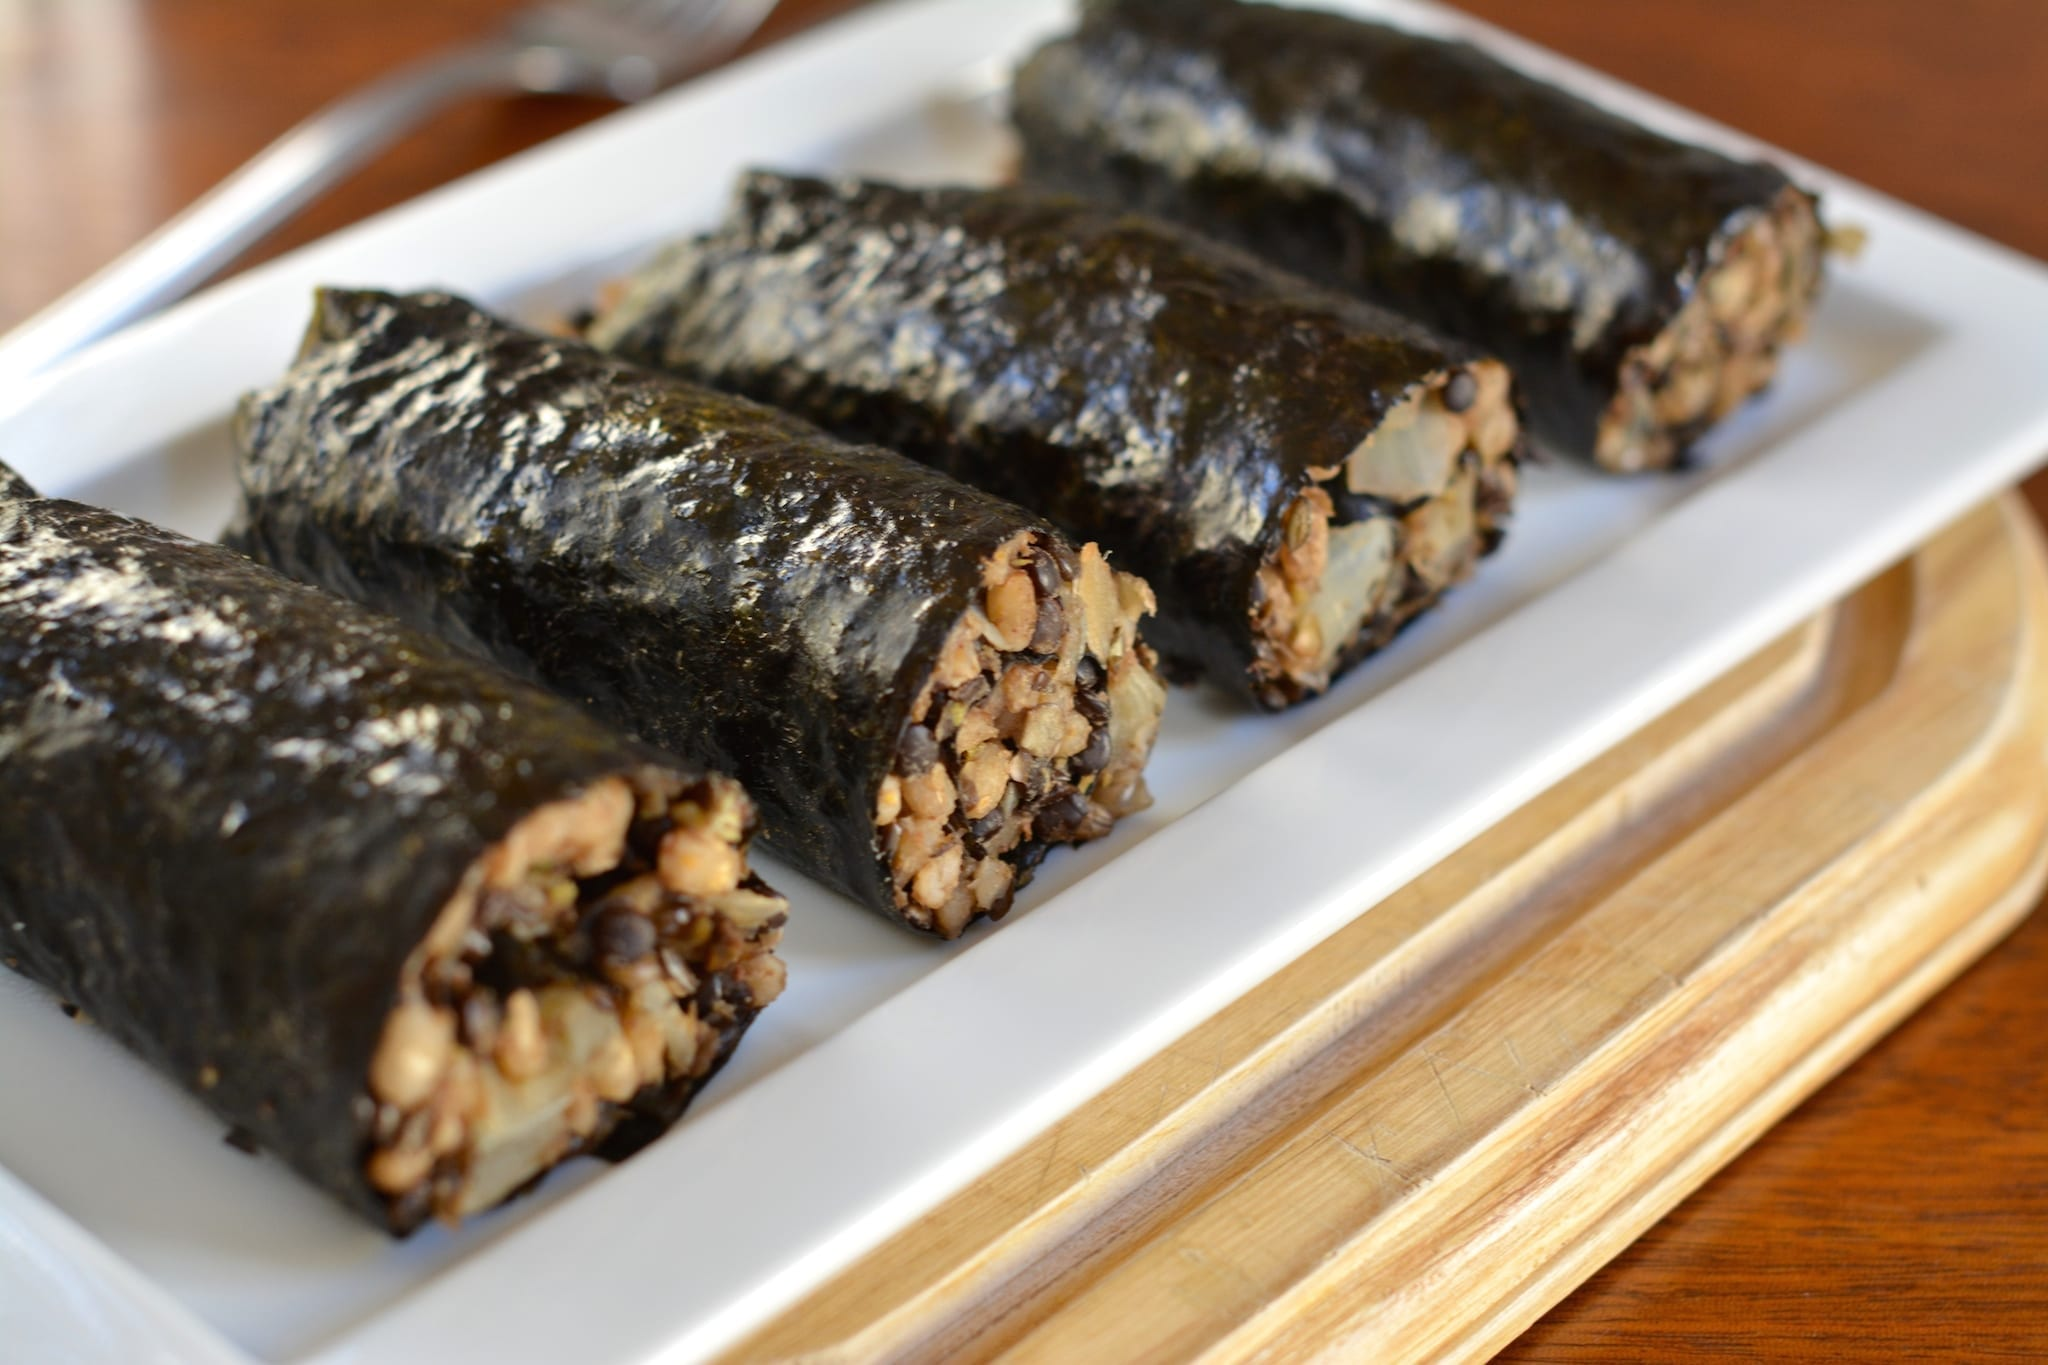 Nori Sausages with Barley-Lentil Filling